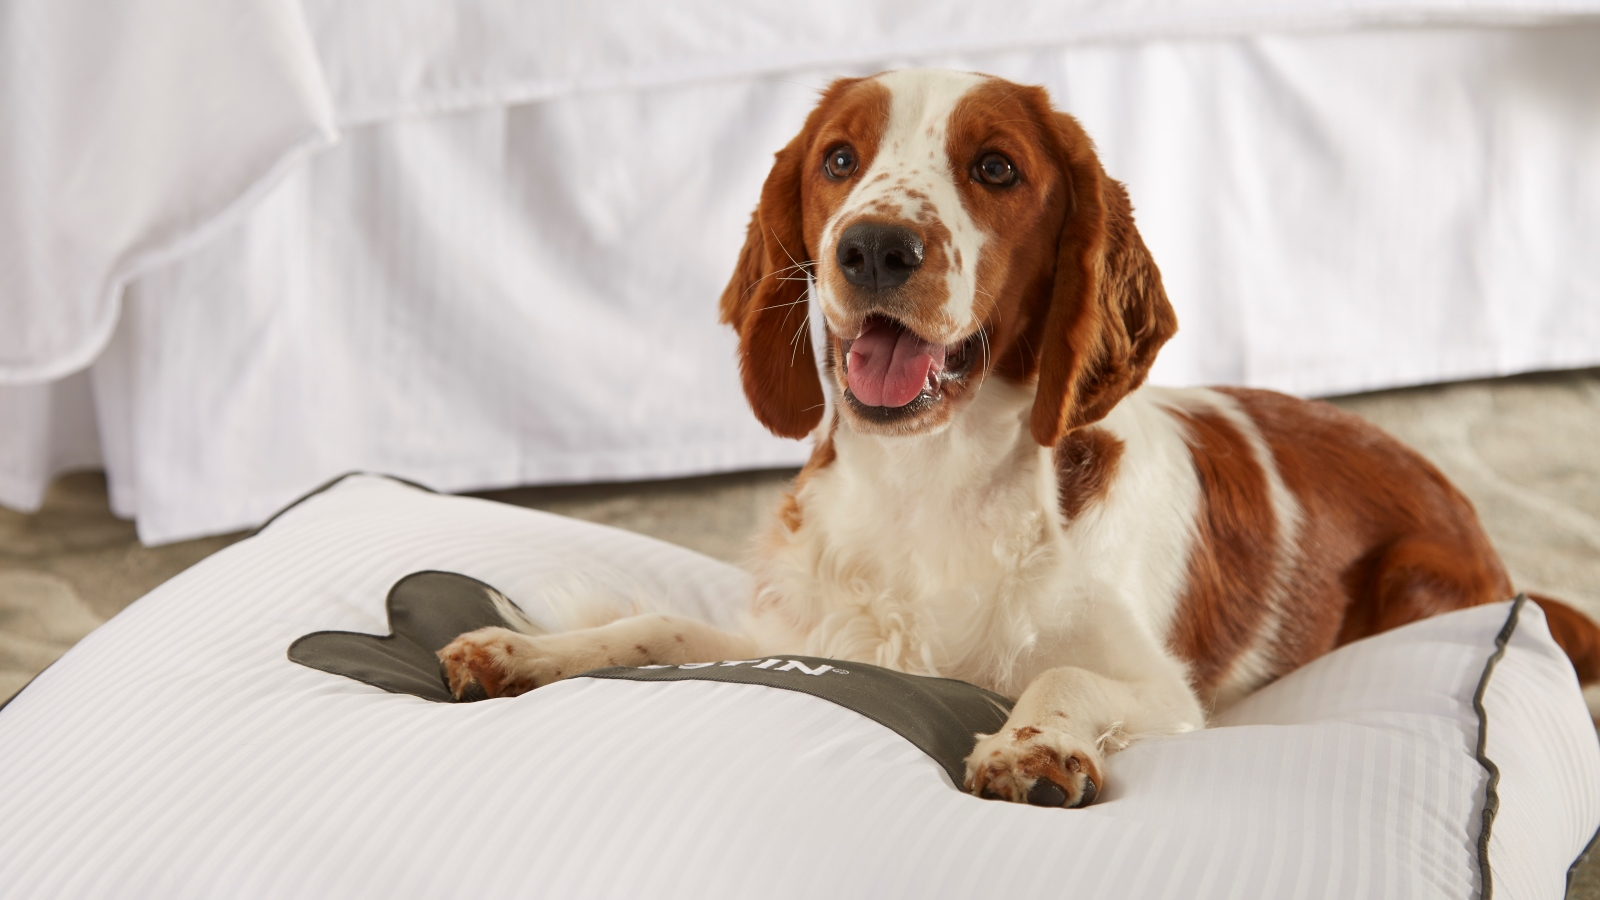 Pet Friendly Hotel in Carlsbad, CA